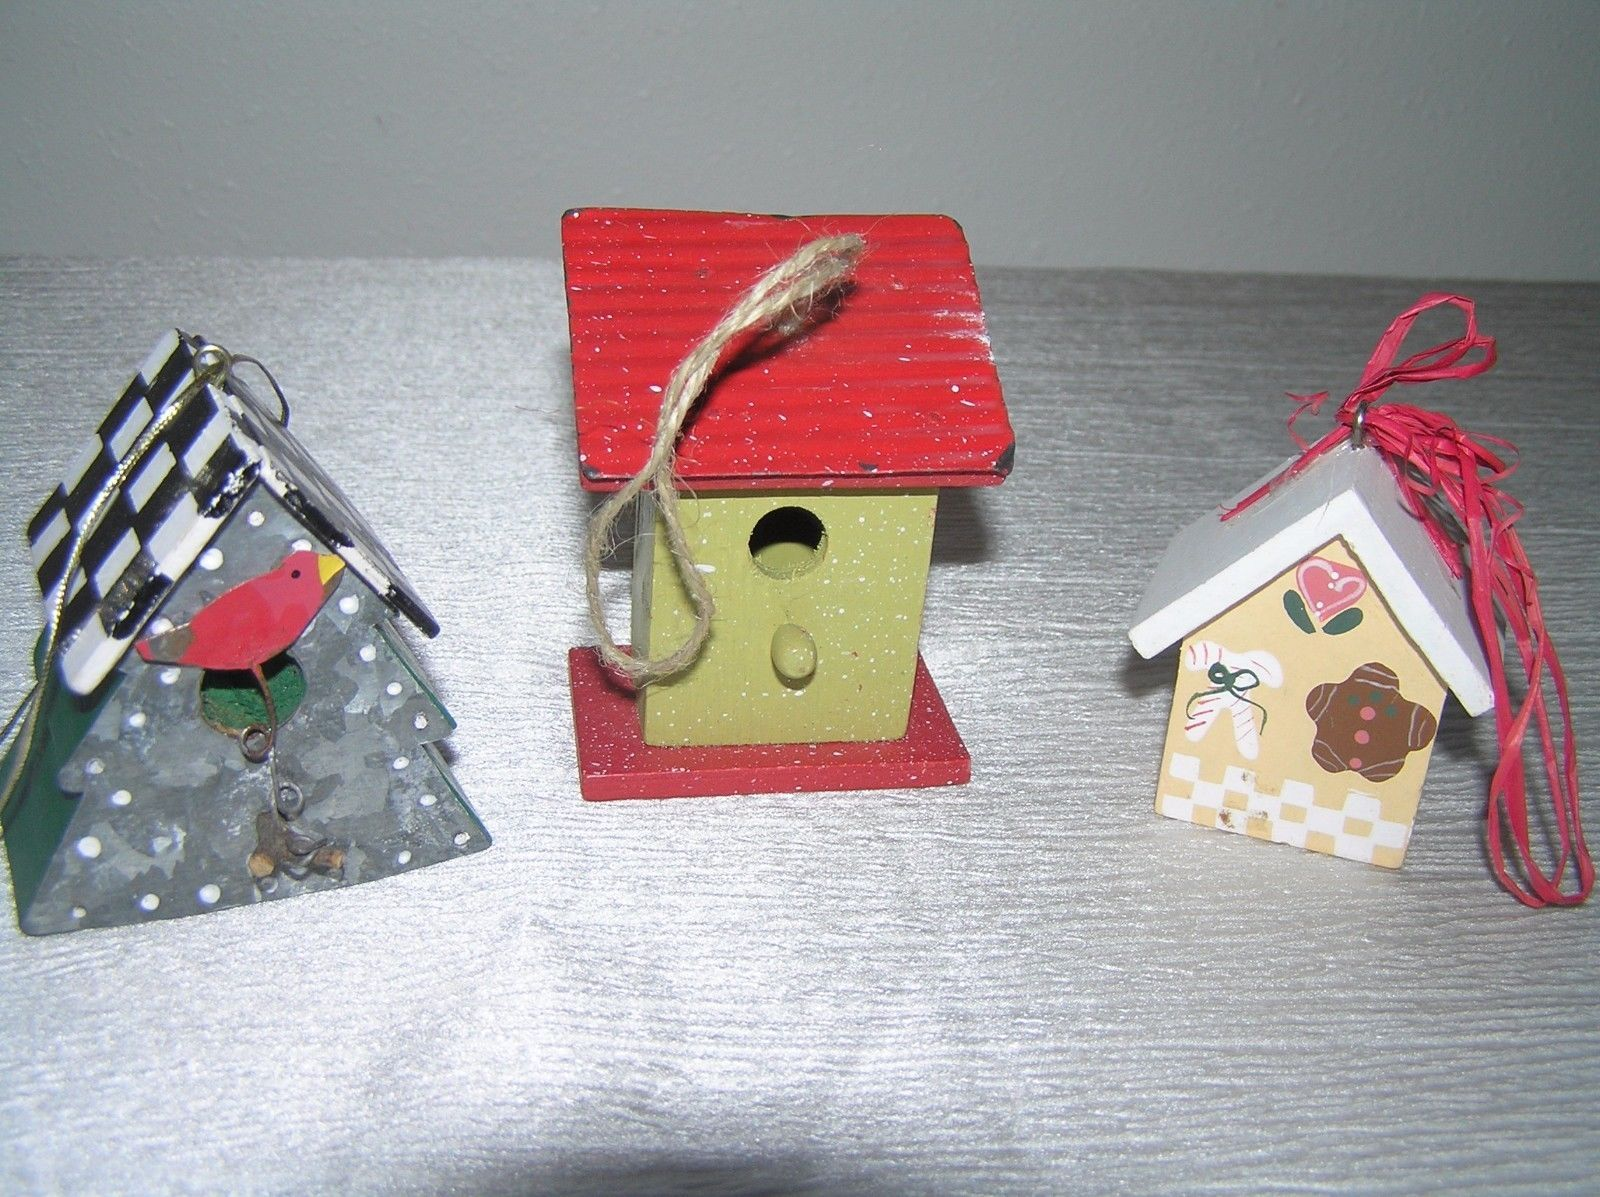 Vintage Lot of 3 Red & Cream Painted Wood & Metal Checkboard Roof Gingerbread